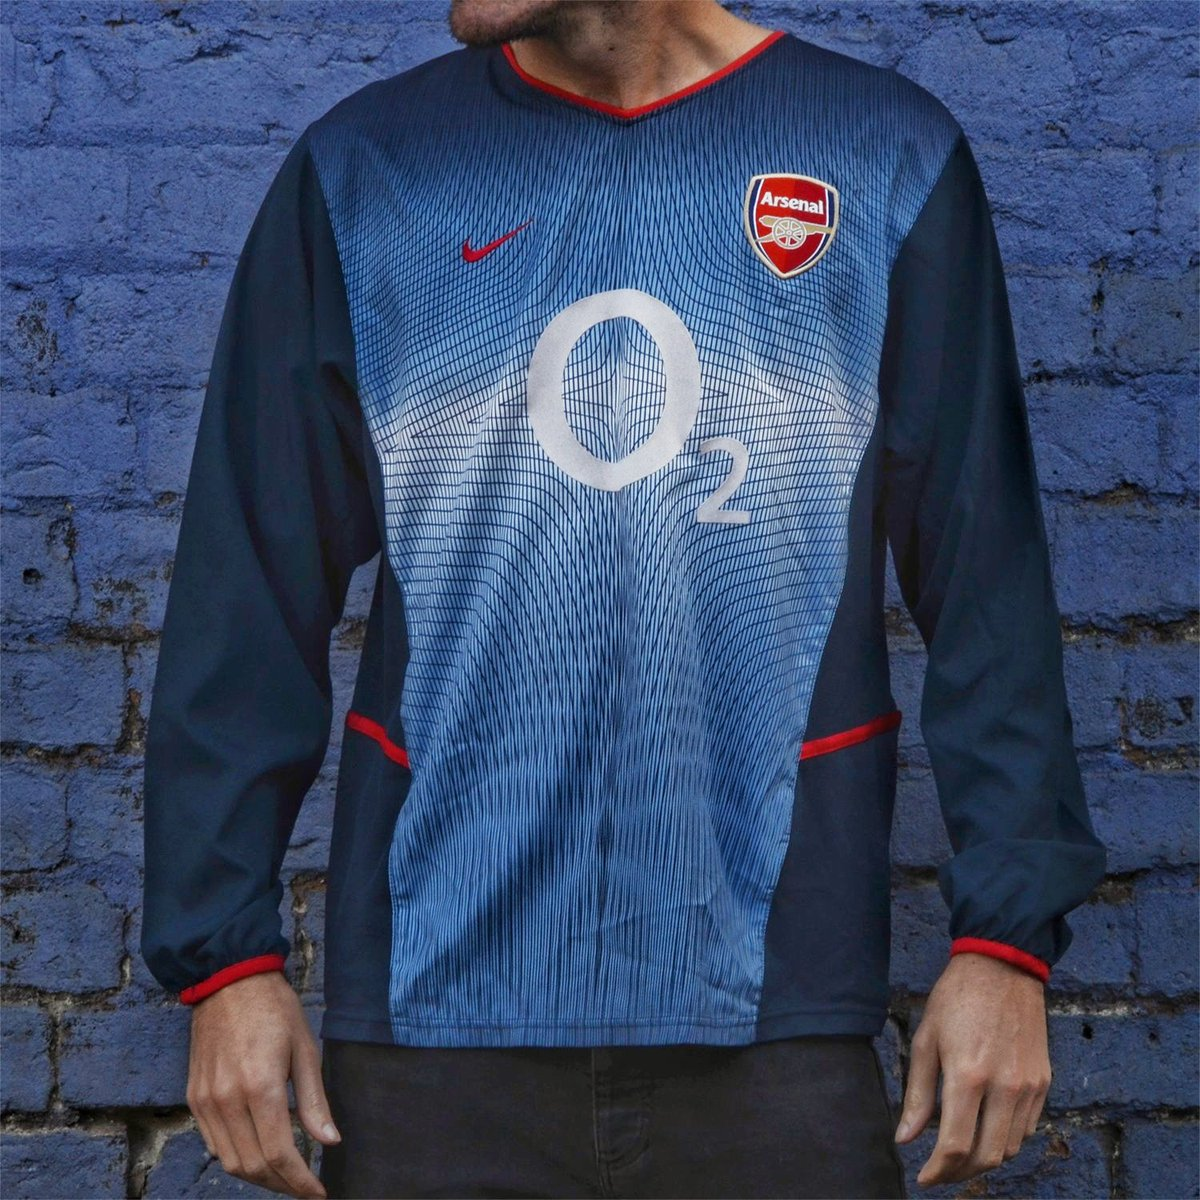 00c2a715 Between 2003 and 2005, Arsenal had one of the greatest teams the Premier  League has ever seen - the 2002-04 away kit was also worn in the season  when they ...